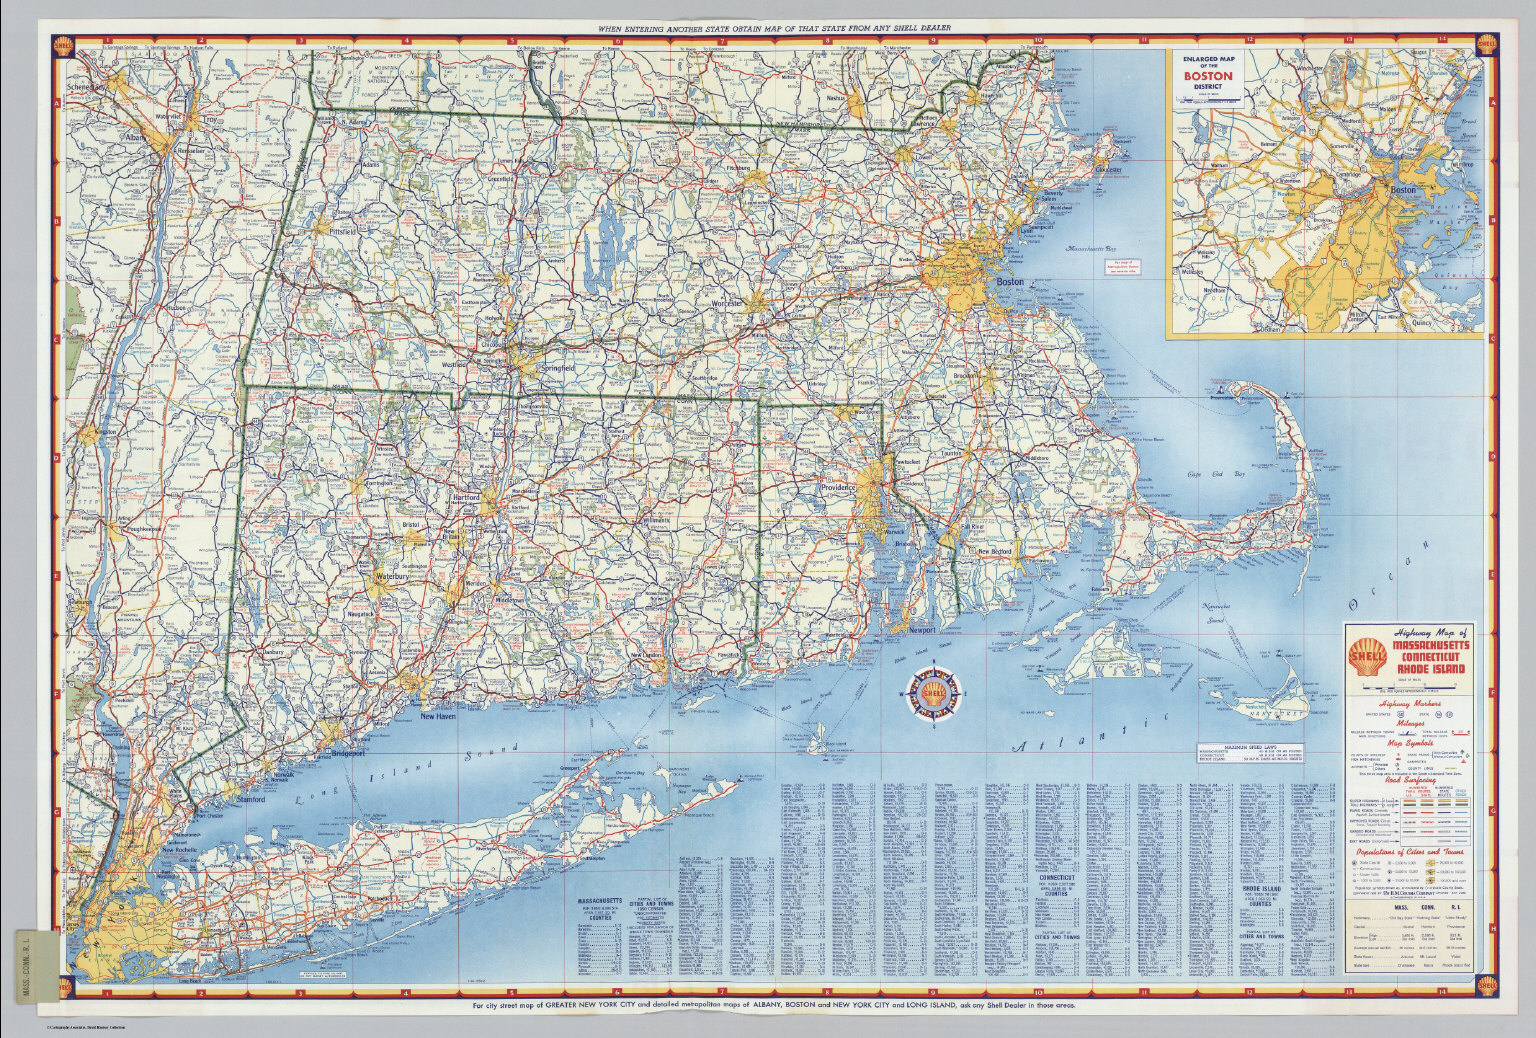 Shell Highway Map Of Massachusetts Connecticut Rhode Island - Map of massachussets